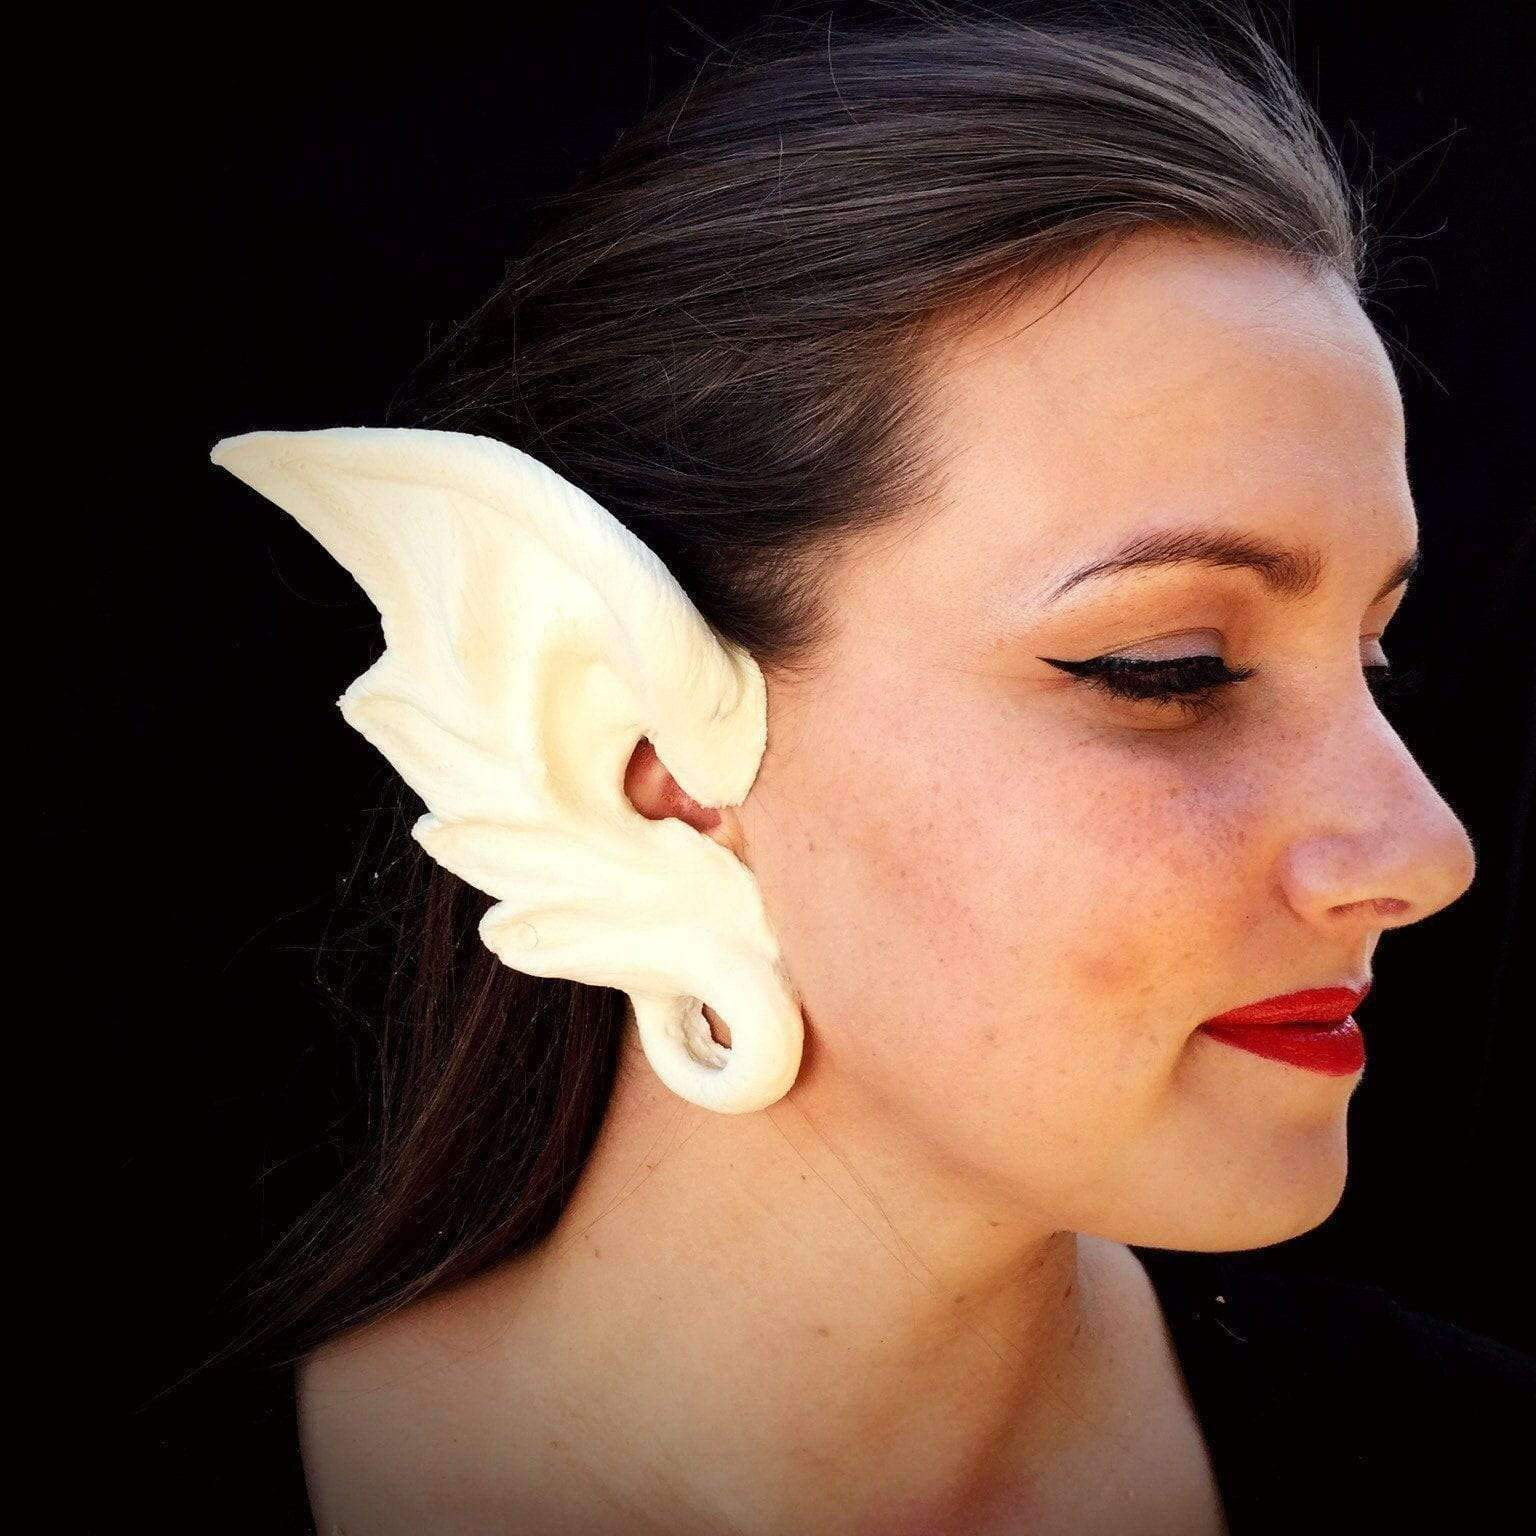 The Scream Team Ears | Monster Gauge Ears | Foam Latex Prosthetic